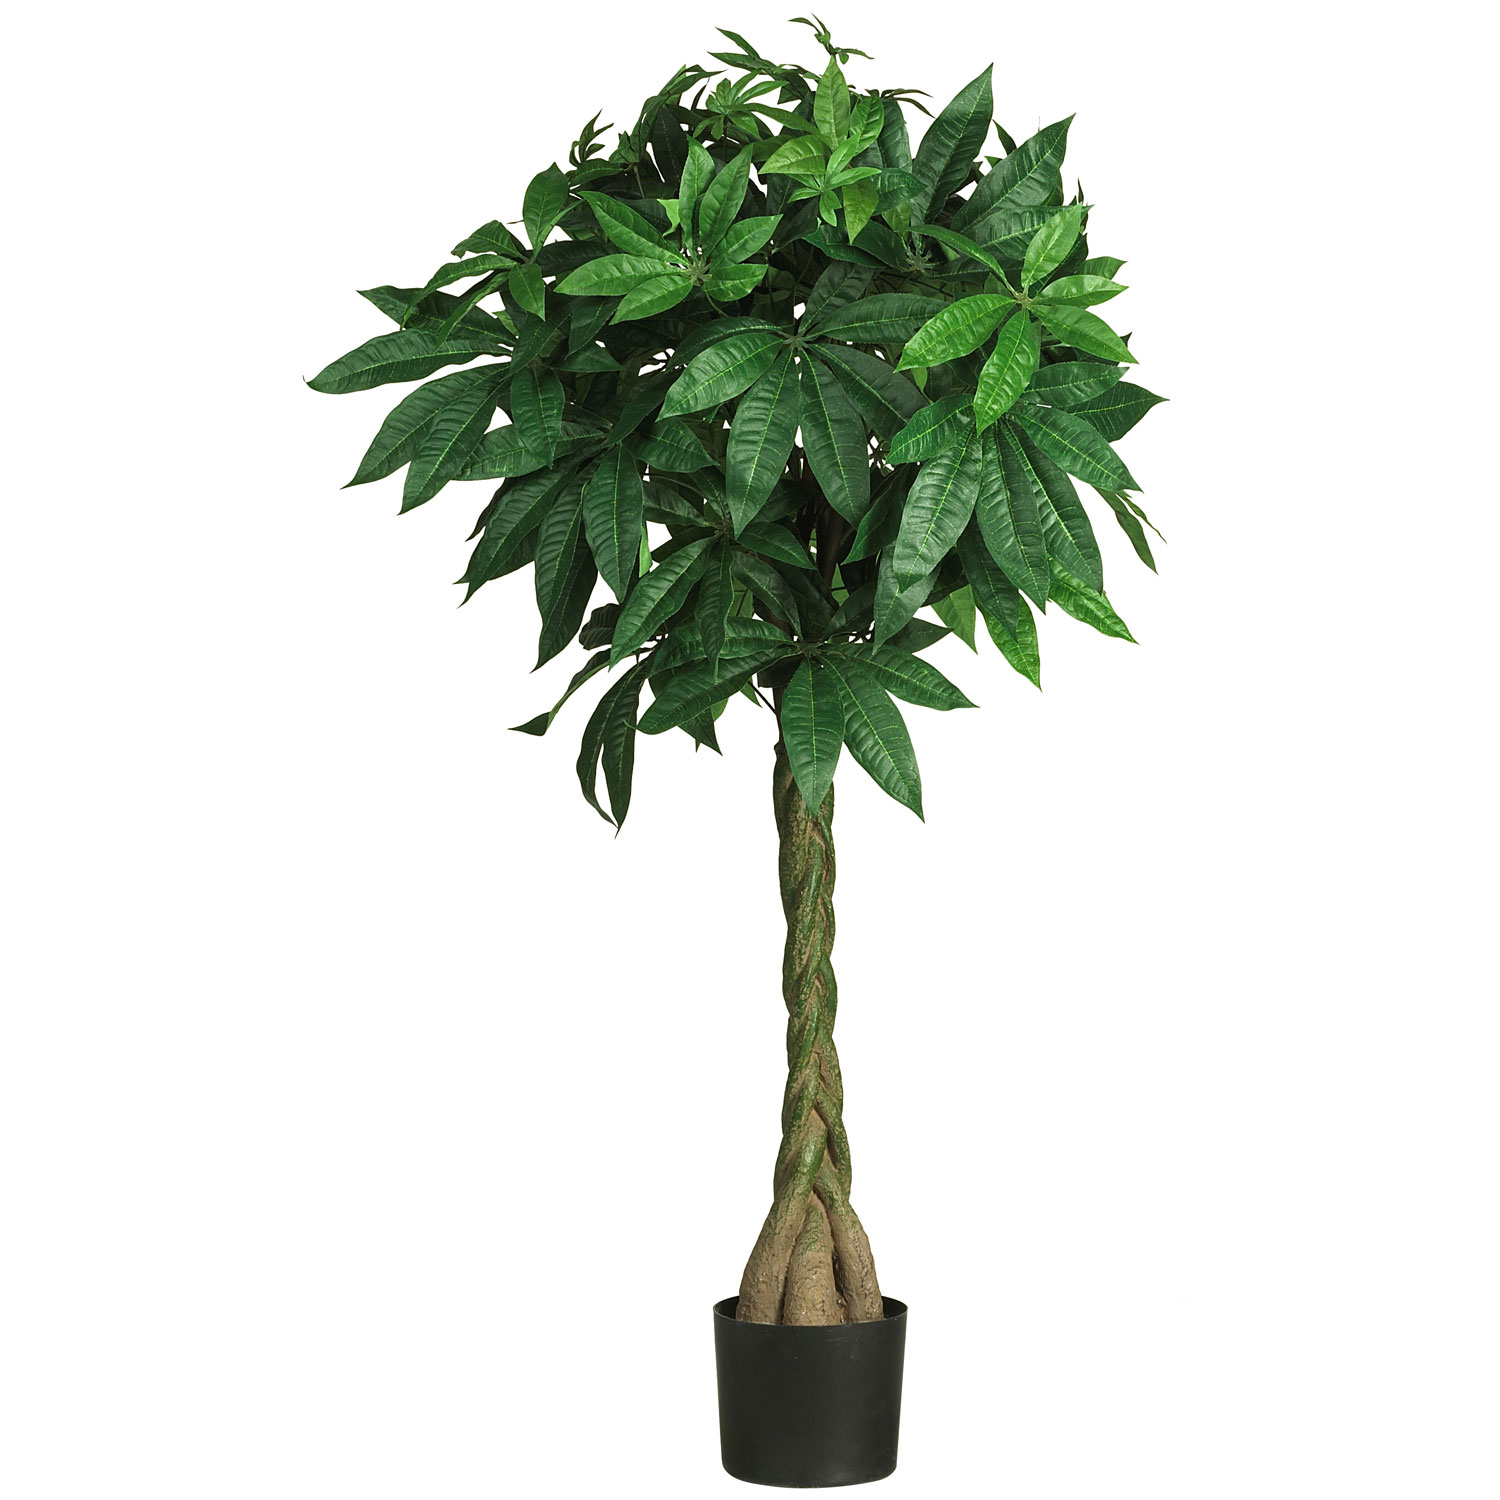 Inch money tree potted